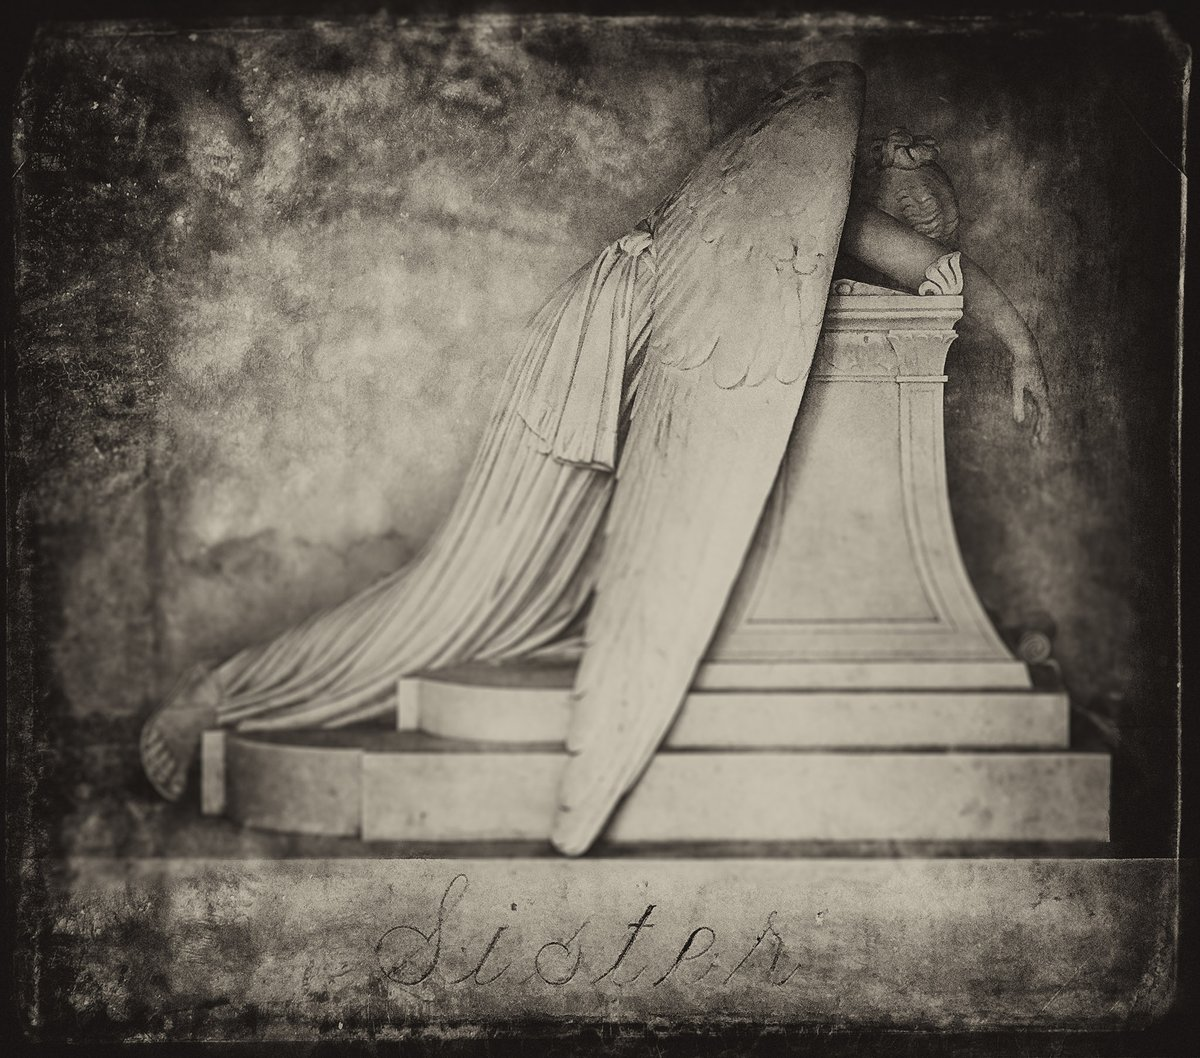 Sister #photography #blackandwhitephotography #fineartphotography #NewOrleans #cemetery #momentomori #angel #angels